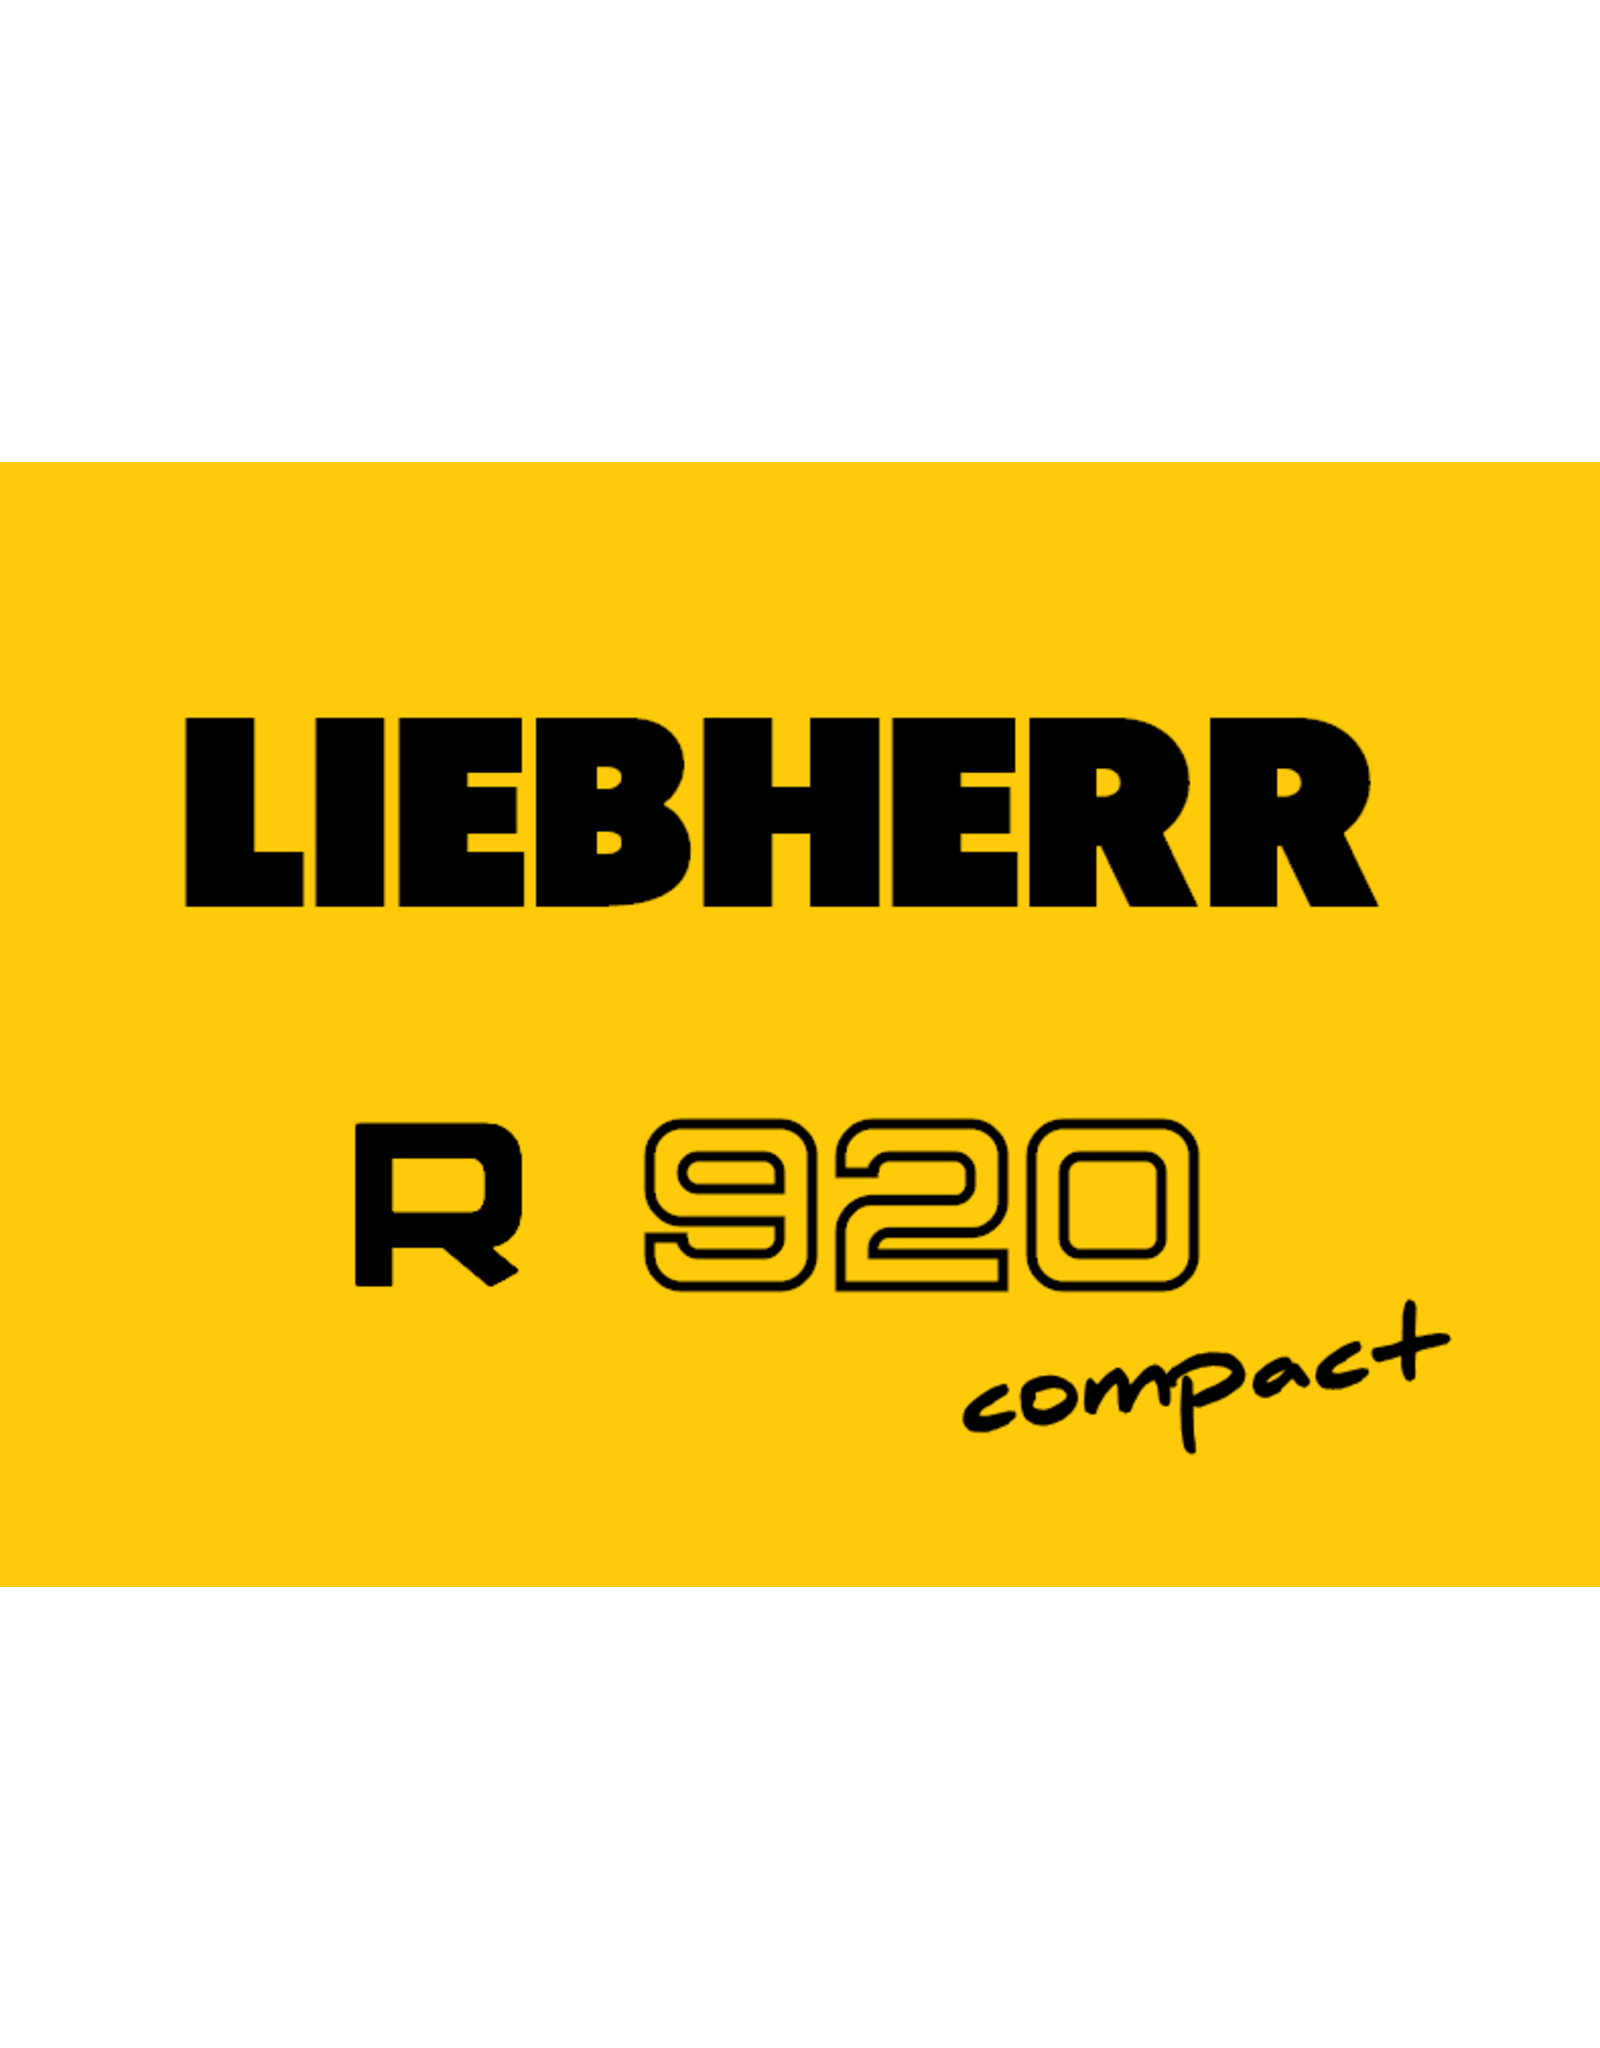 Echle Hartstahl GmbH FOPS for Liebherr R 920 Compact